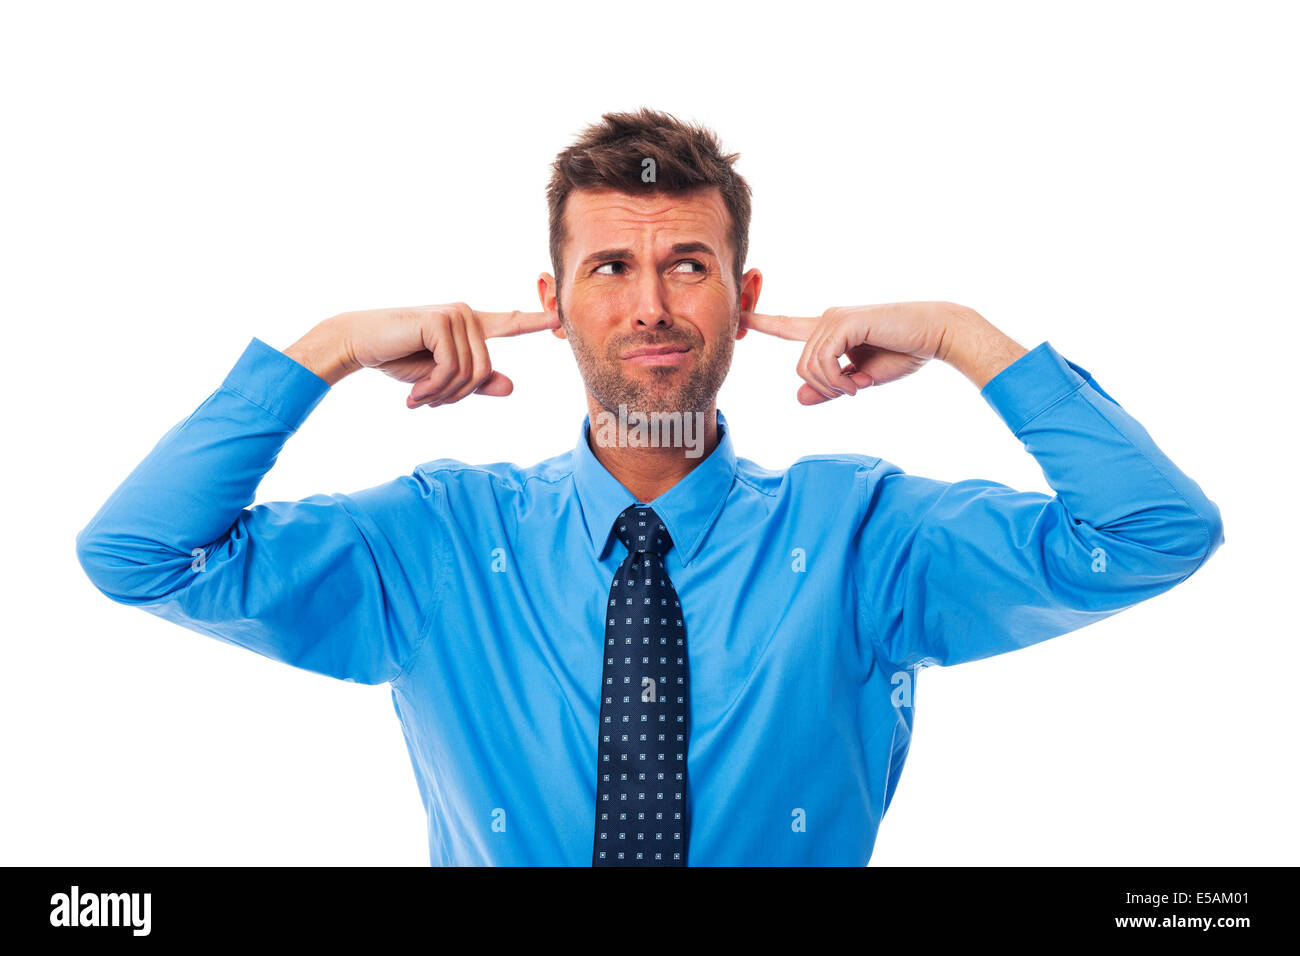 Disgust business man with fingers in ears, Debica, Poland - Stock Image